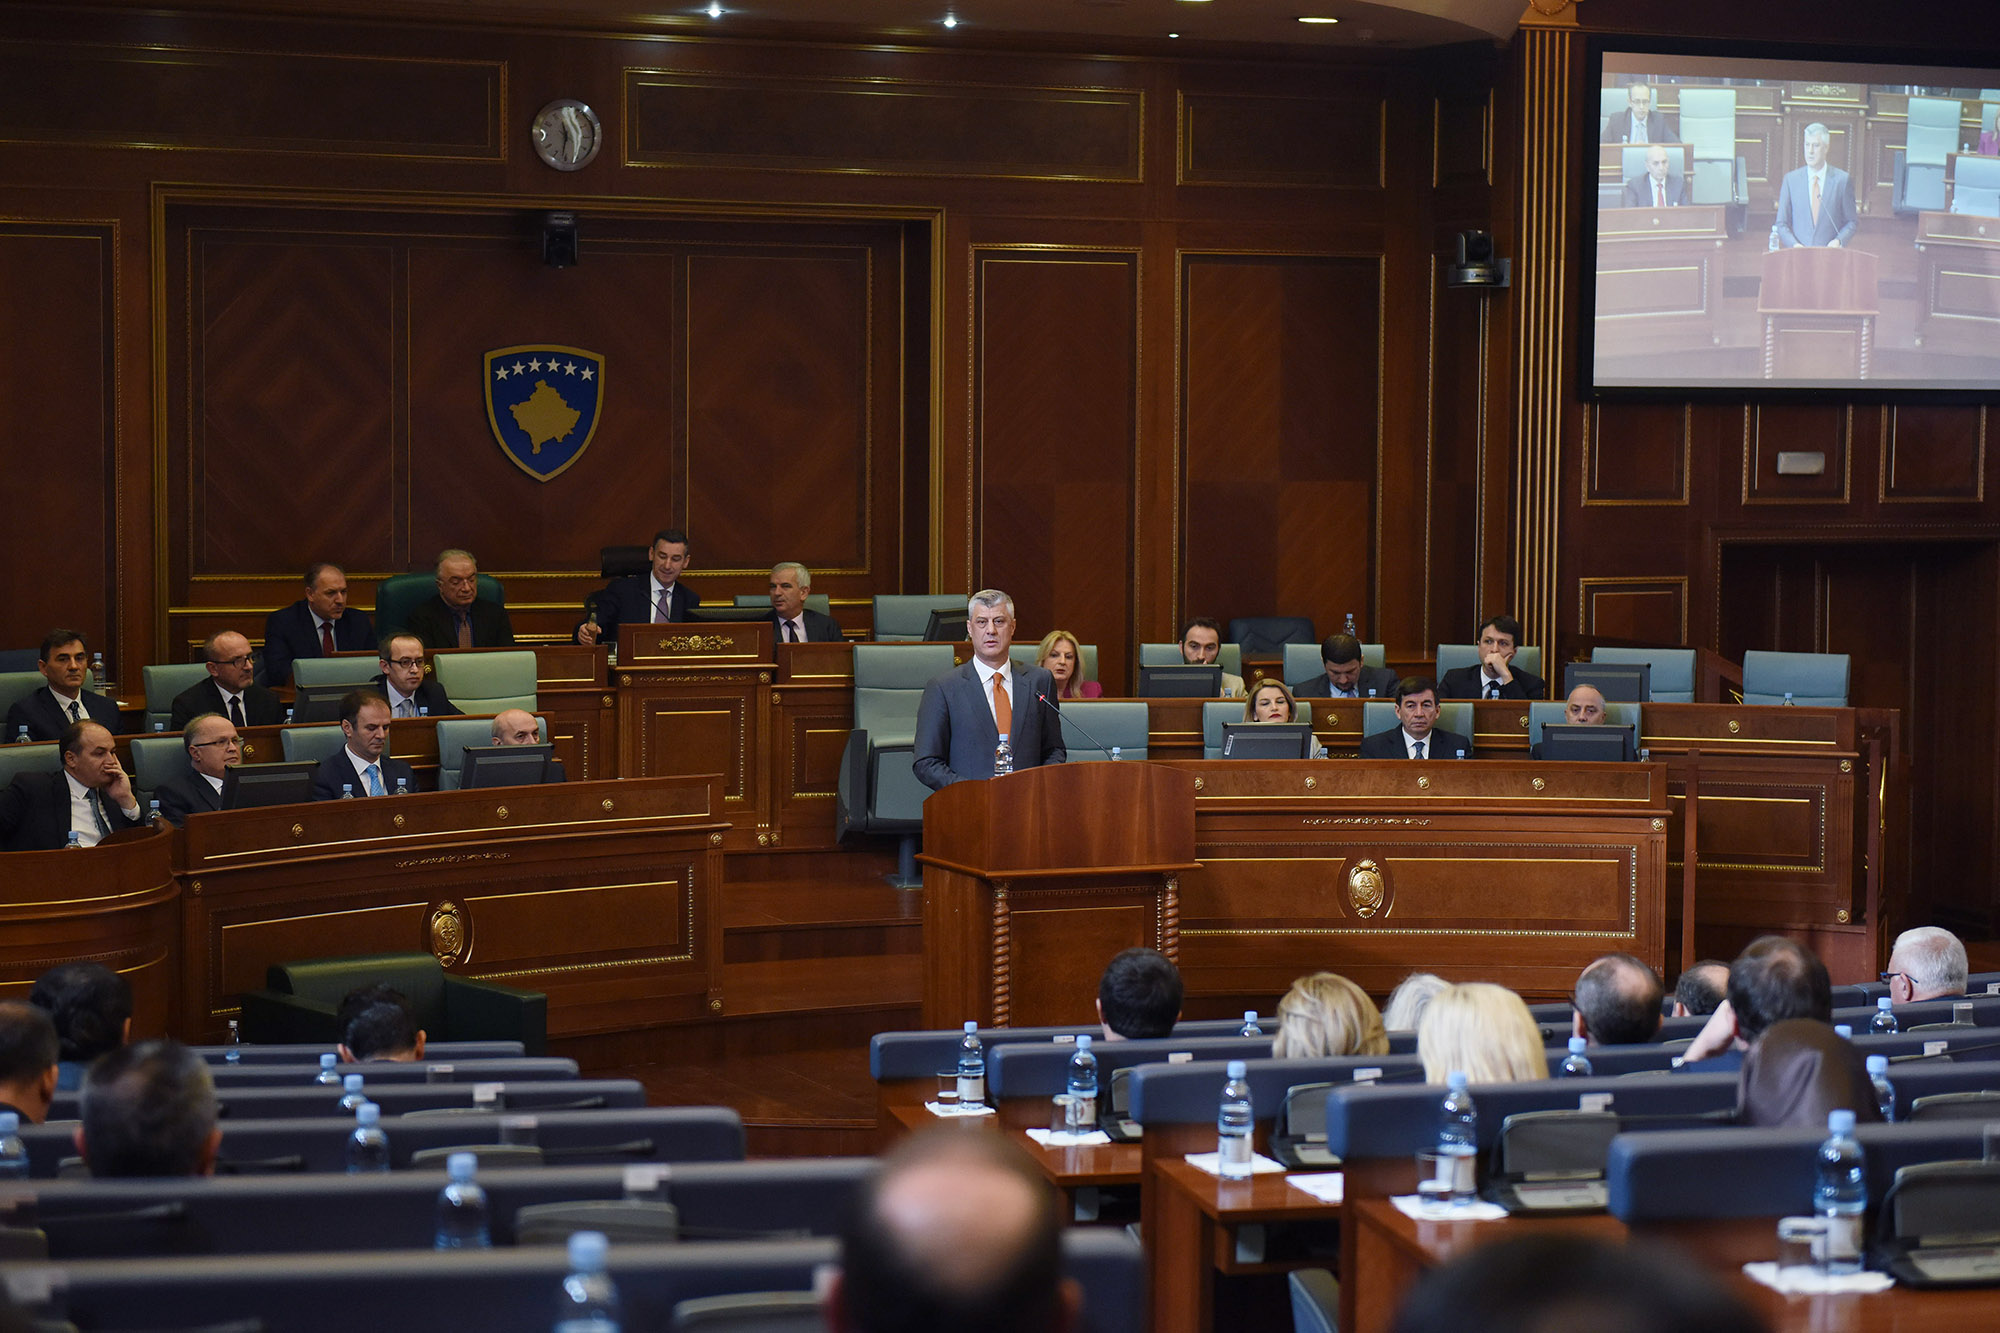 Kosovo President Thaci urges approval of Montenegro border deal